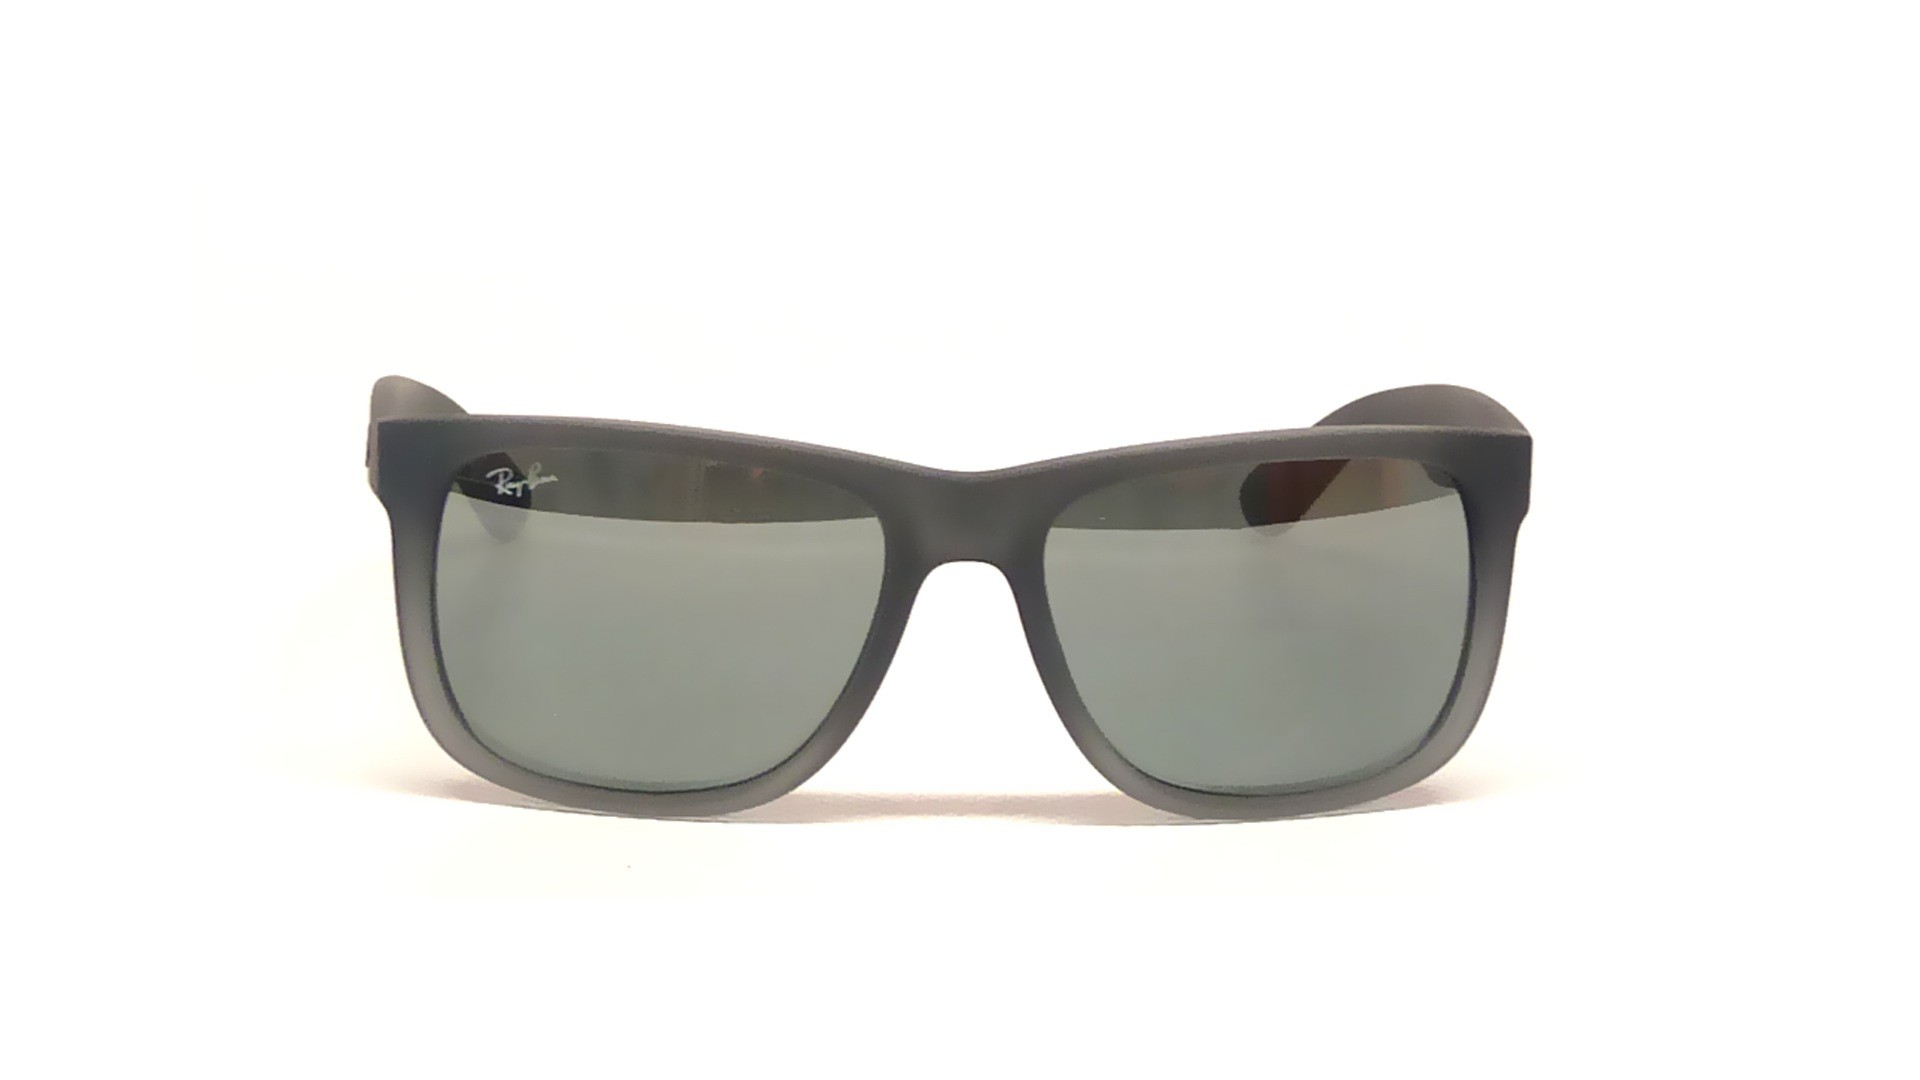 98d158e3f Ray-Ban Justin Rb4165 852/88 Grey Rubber-silver Gradient Mirror 54mm ...